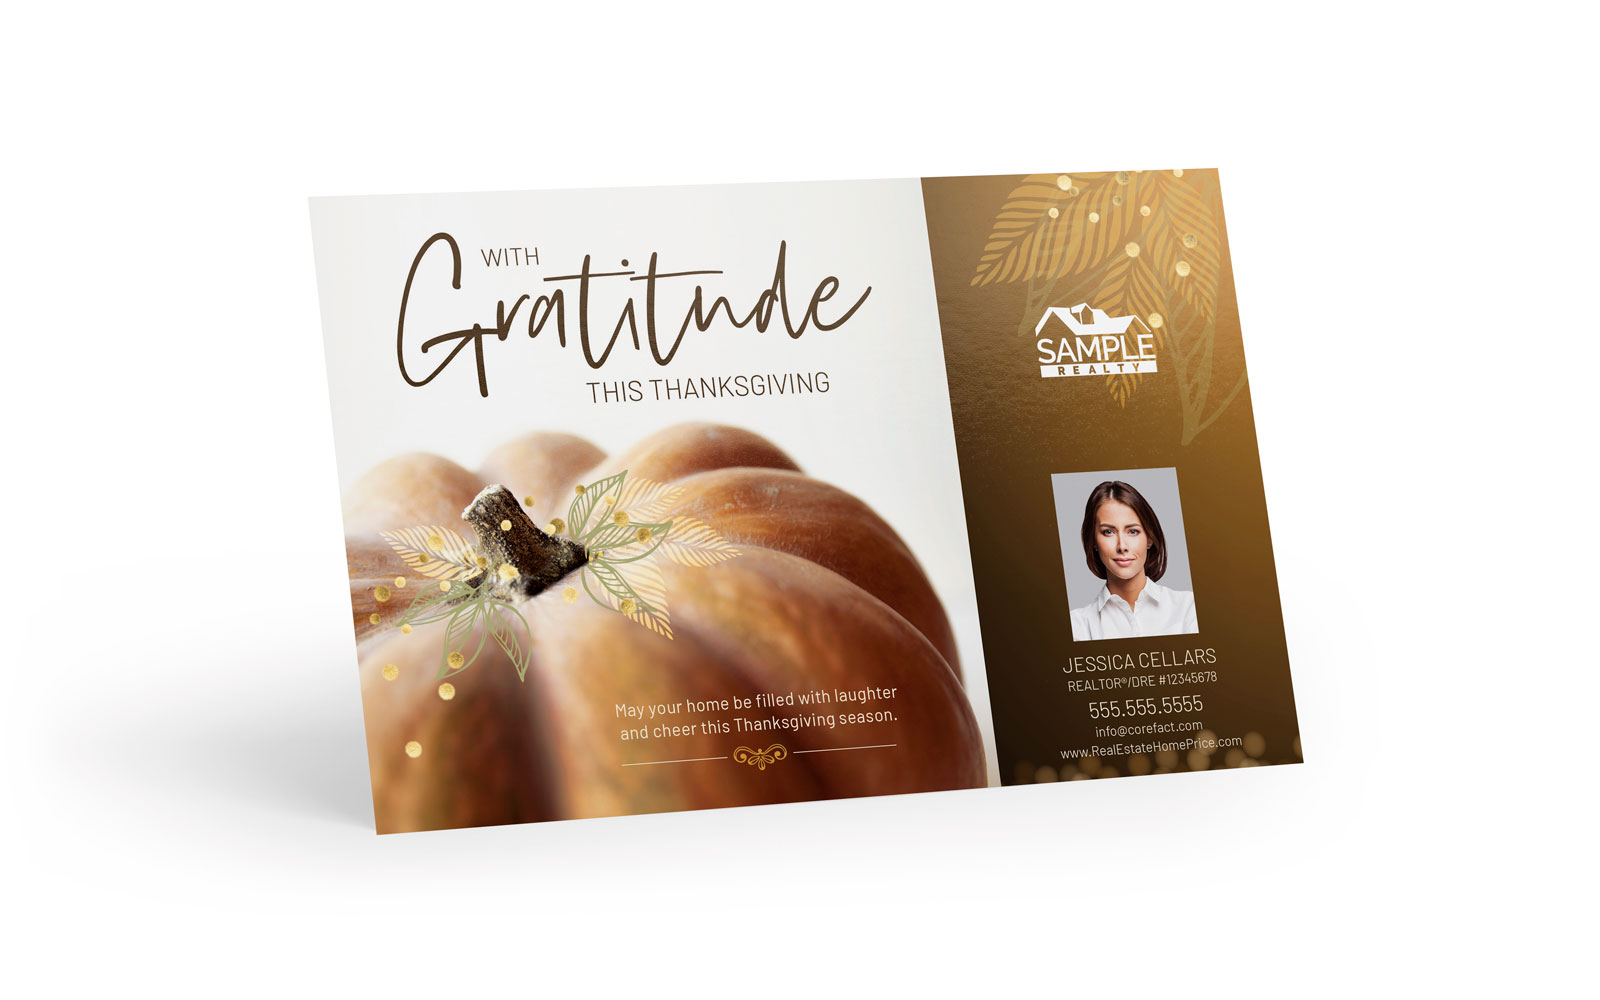 Corefact Seasonal - Thanksgiving Gratitude